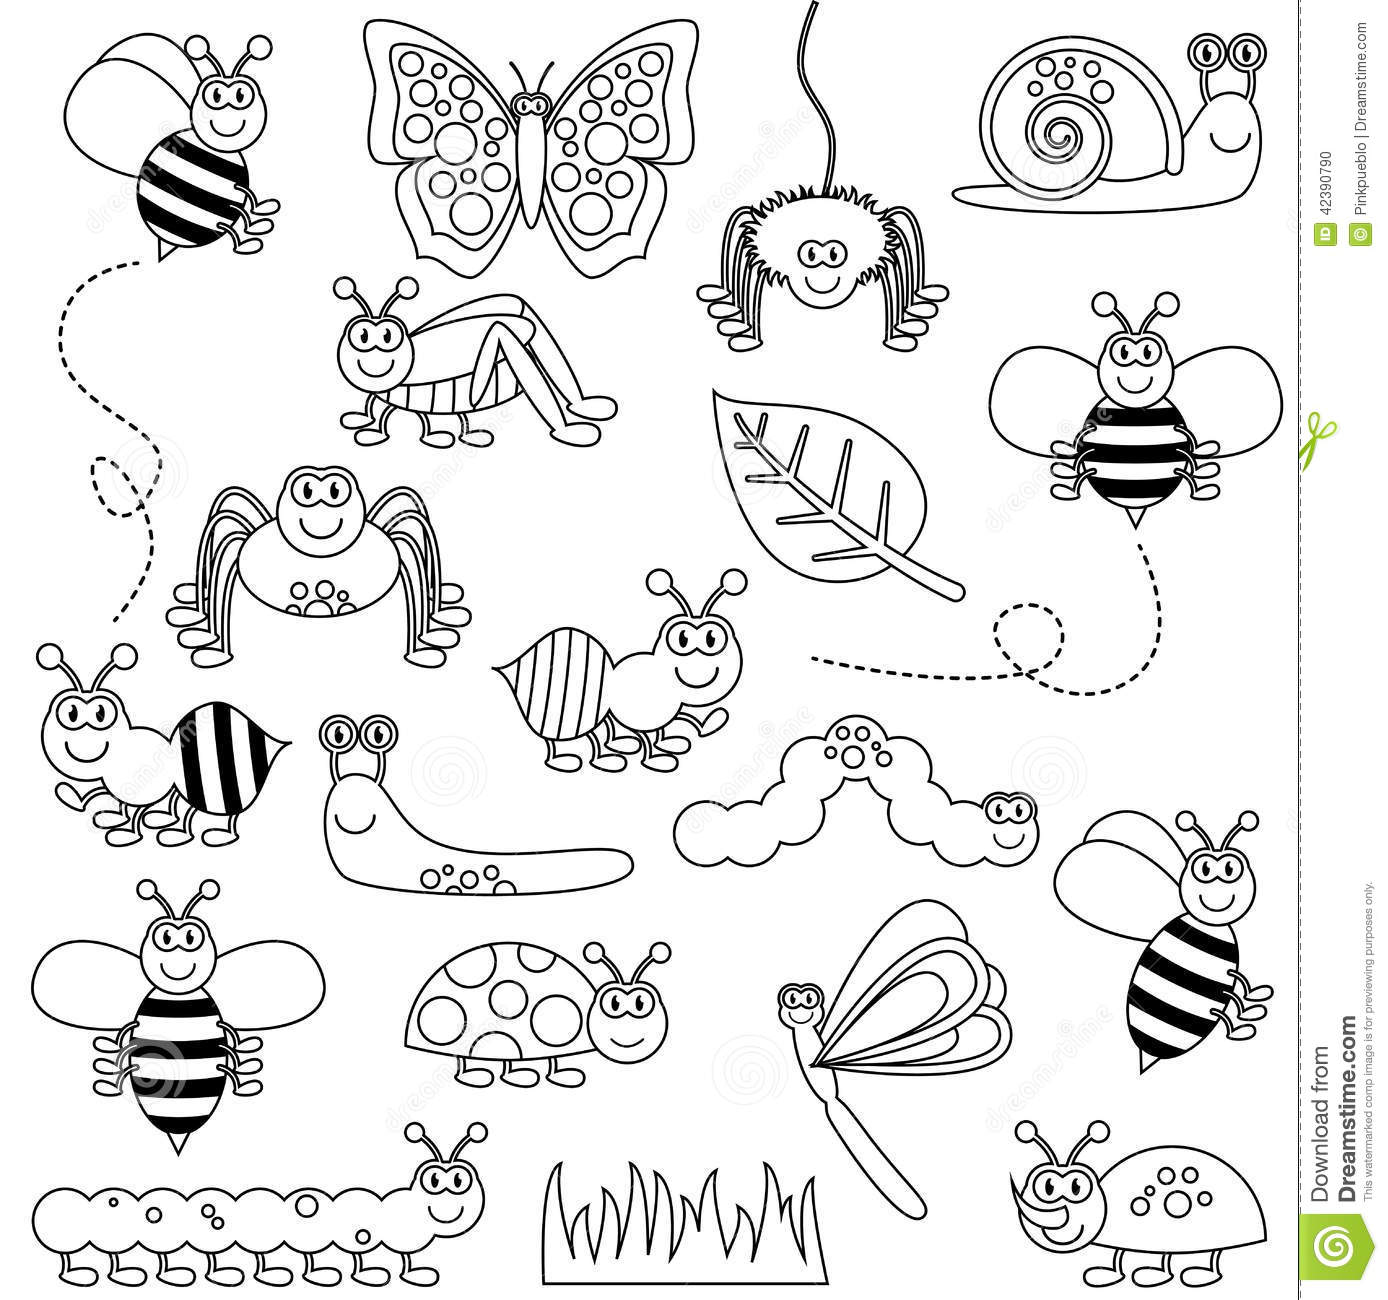 Stick Insect Clip Art Black And White Sketch Coloring Page